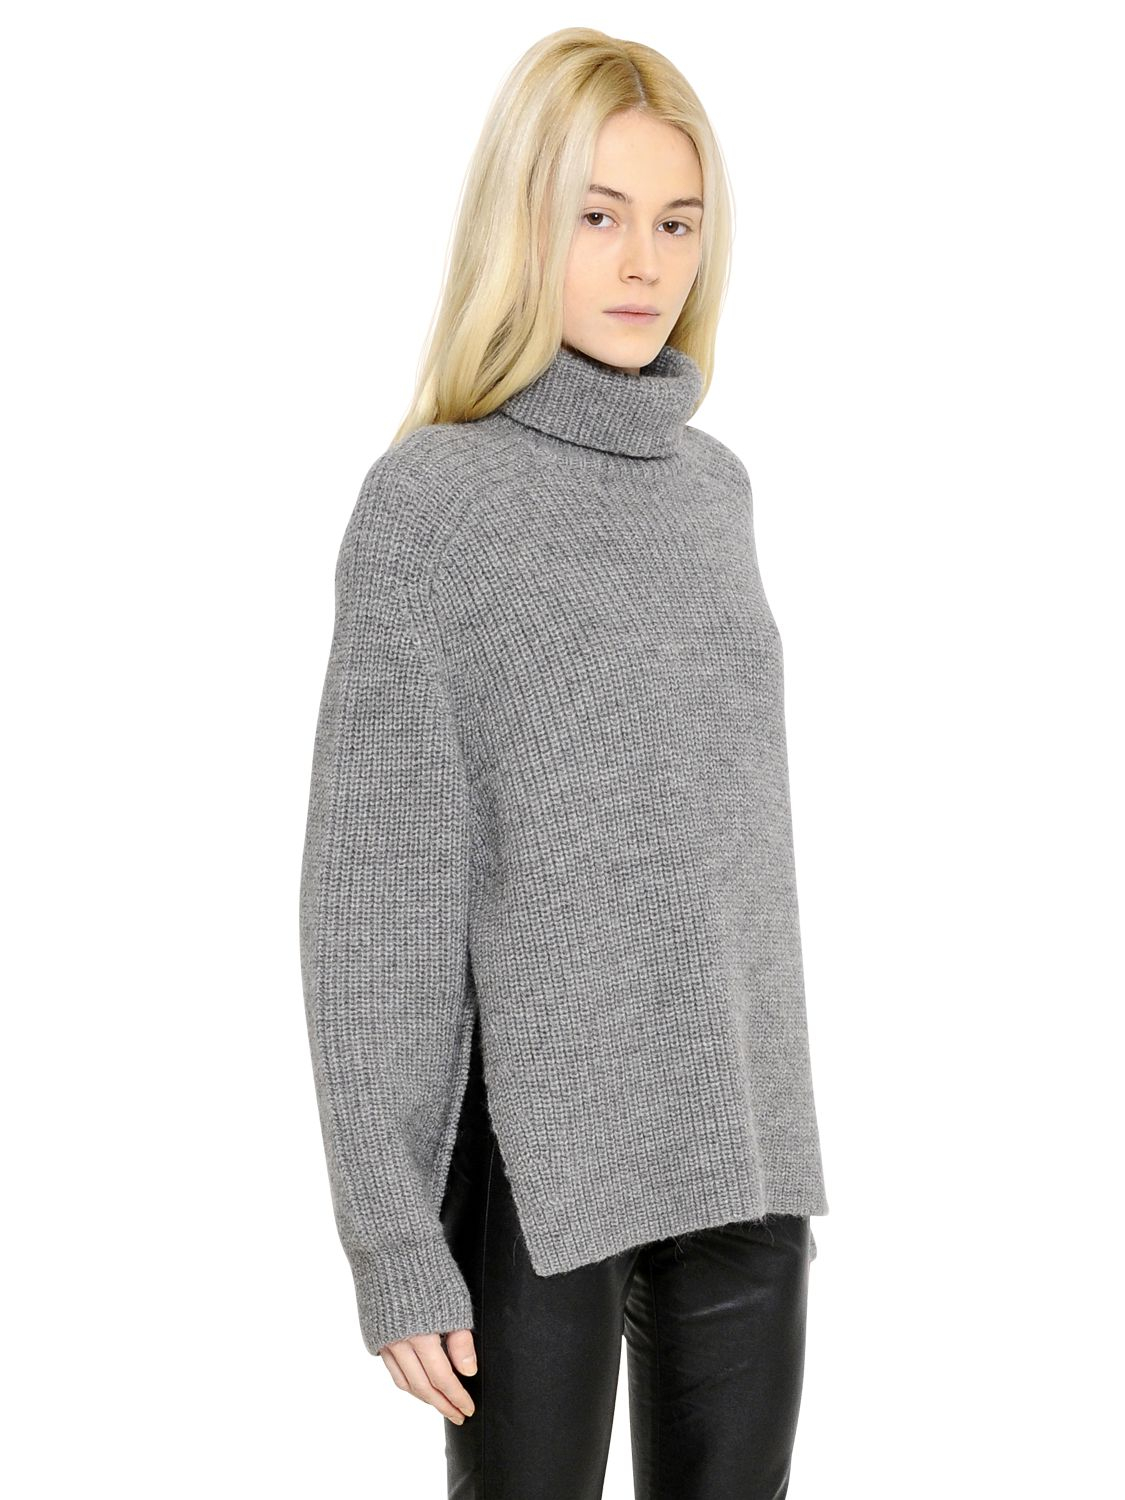 Étoile isabel marant Oversized Wool Blend Turtleneck Sweater in ...